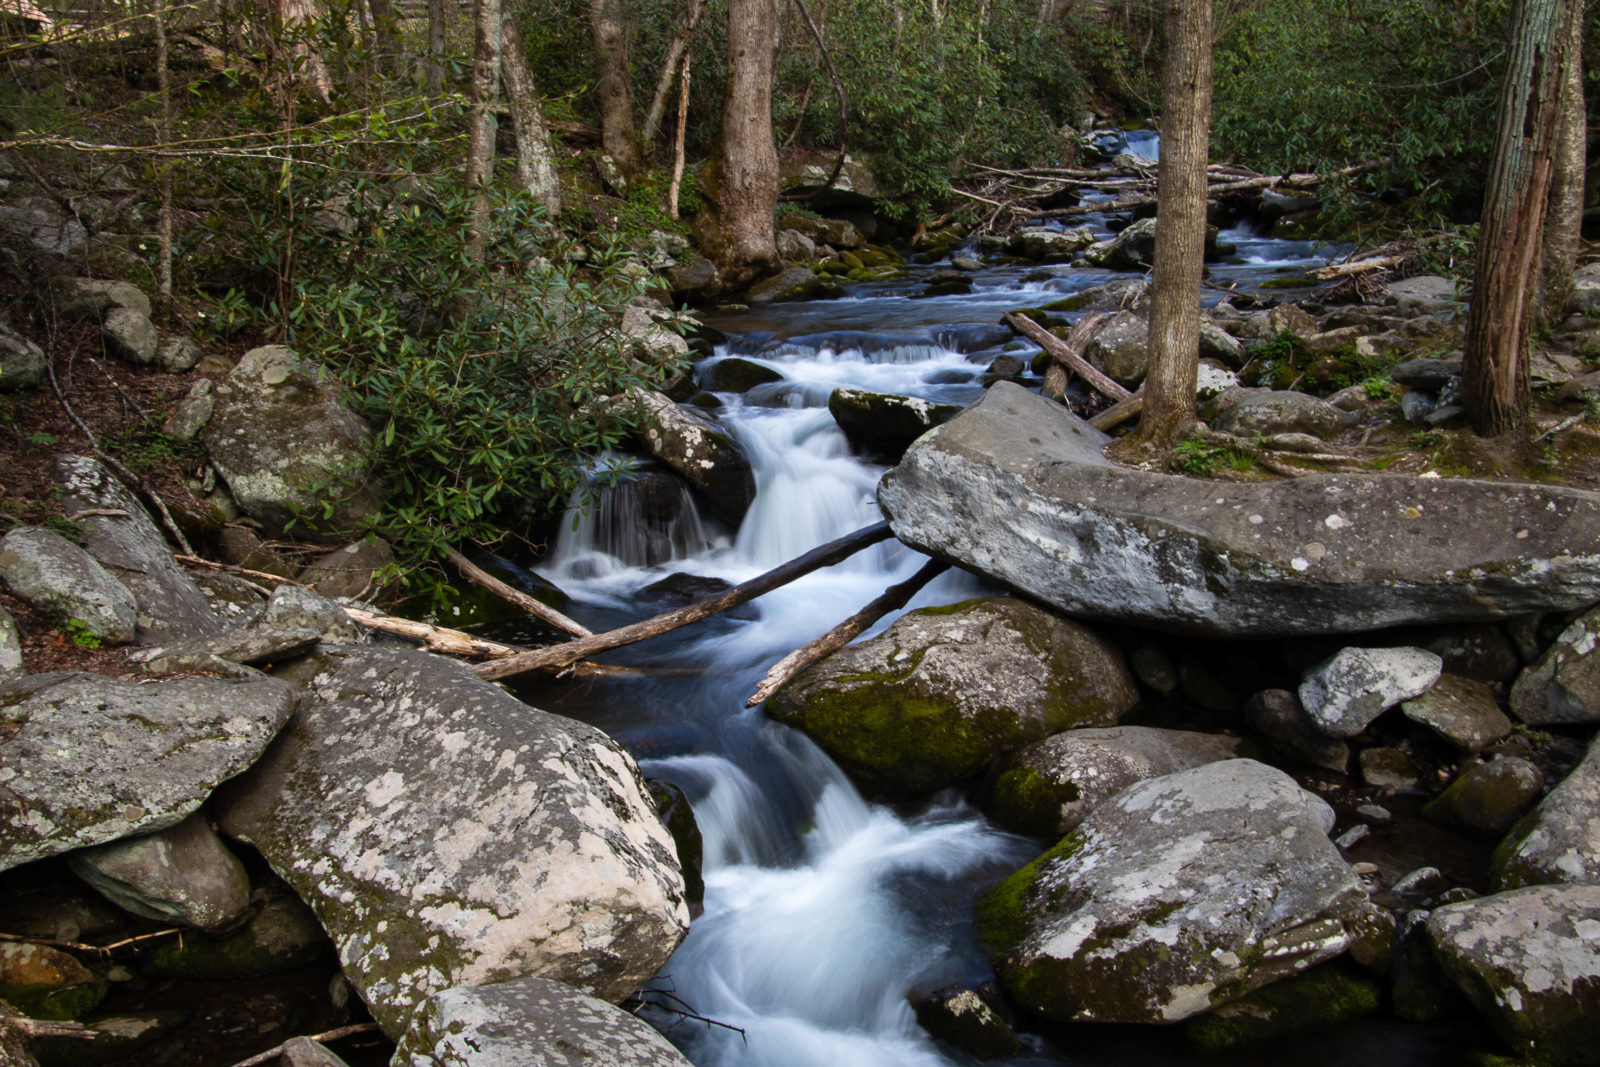 Spring Flow in the Smoky Mountains